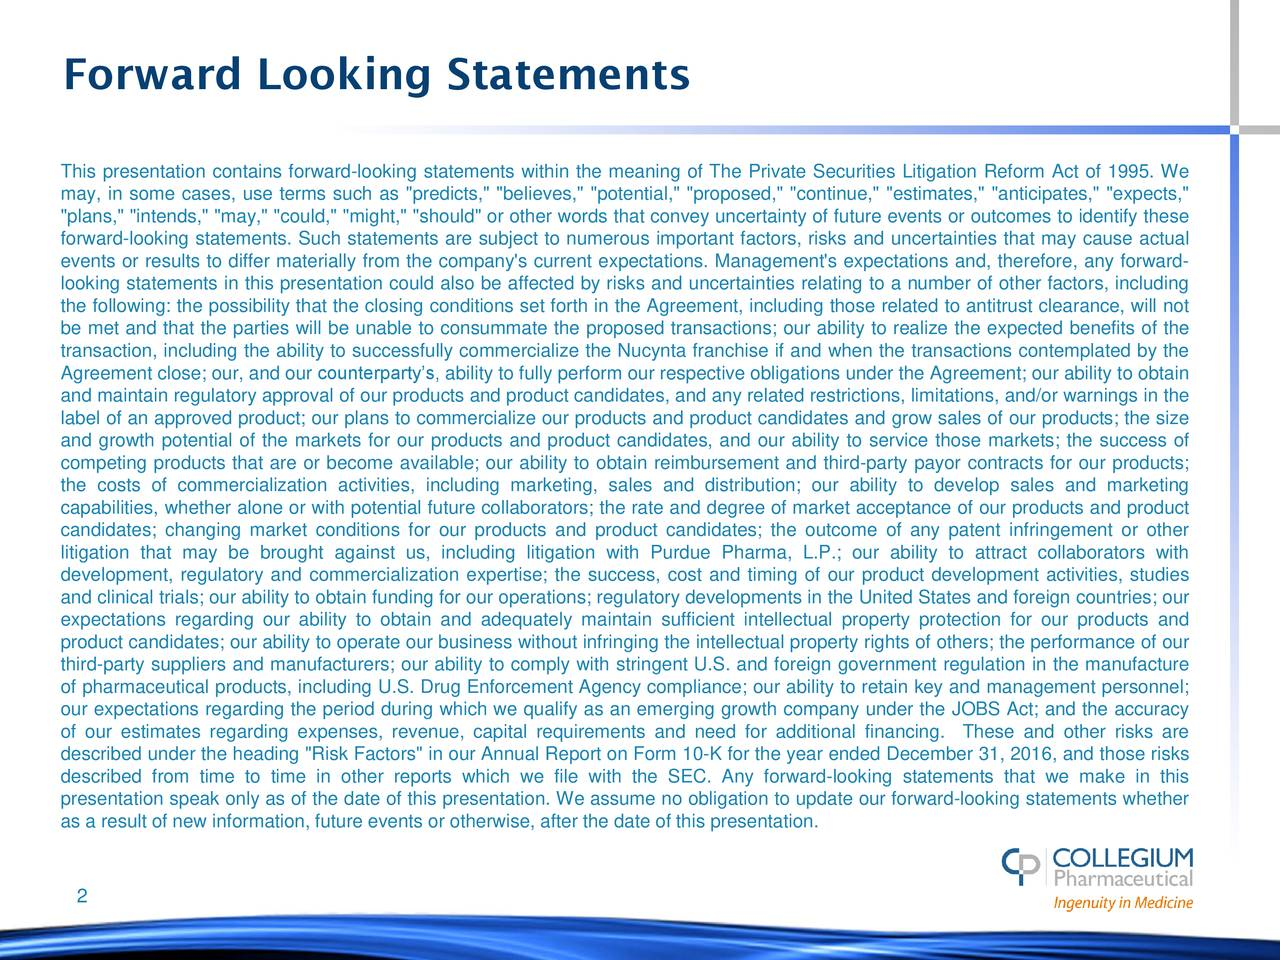 """This presentation contains forward-looking statements within the meaning of The Private Securities Litigation Reform Act of 1995. We may, in some cases, use terms such as """"predicts,"""" """"believes,"""" """"potential,"""" """"proposed,"""" """"continue,"""" """"estimates,"""" """"anticipates,"""" """"expects,"""" """"plans,"""" """"intends,"""" """"may,"""" """"could,"""" """"might,"""" """"should"""" or other words that convey uncertainty of future events or outcomes to identify these forward-looking statements. Such statements are subject to numerous important factors, risks and uncertainties that may cause actual events or results to differ materially from the company's current expectations. Management's expectations and, therefore, any forward- looking statements in this presentation could also be affected by risks and uncertainties relating to a number of other factors, including the following: the possibility that the closing conditions set forth in the Agreement, including those related to antitrust clearance, will not be met and that the parties will be unable to consummate the proposed transactions; our ability to realize the expected benefits of the transaction, including the ability to successfully commercialize the Nucynta franchise if and when the transactions contemplated by the Agreement close; our, and our counterparty's, ability to fully perform our respective obligations under the Agreement; our ability to obtain and maintain regulatory approval of our products and product candidates, and any related restrictions, limitations, and/or warnings in the label of an approved product; our plans to commercialize our products and product candidates and grow sales of our products; the size and growth potential of the markets for our products and product candidates, and our ability to service those markets; the success of competing products that are or become available; our ability to obtain reimbursement and third-party payor contracts for our products; the costs of commercialization activities, including marketing, sales and distribut"""